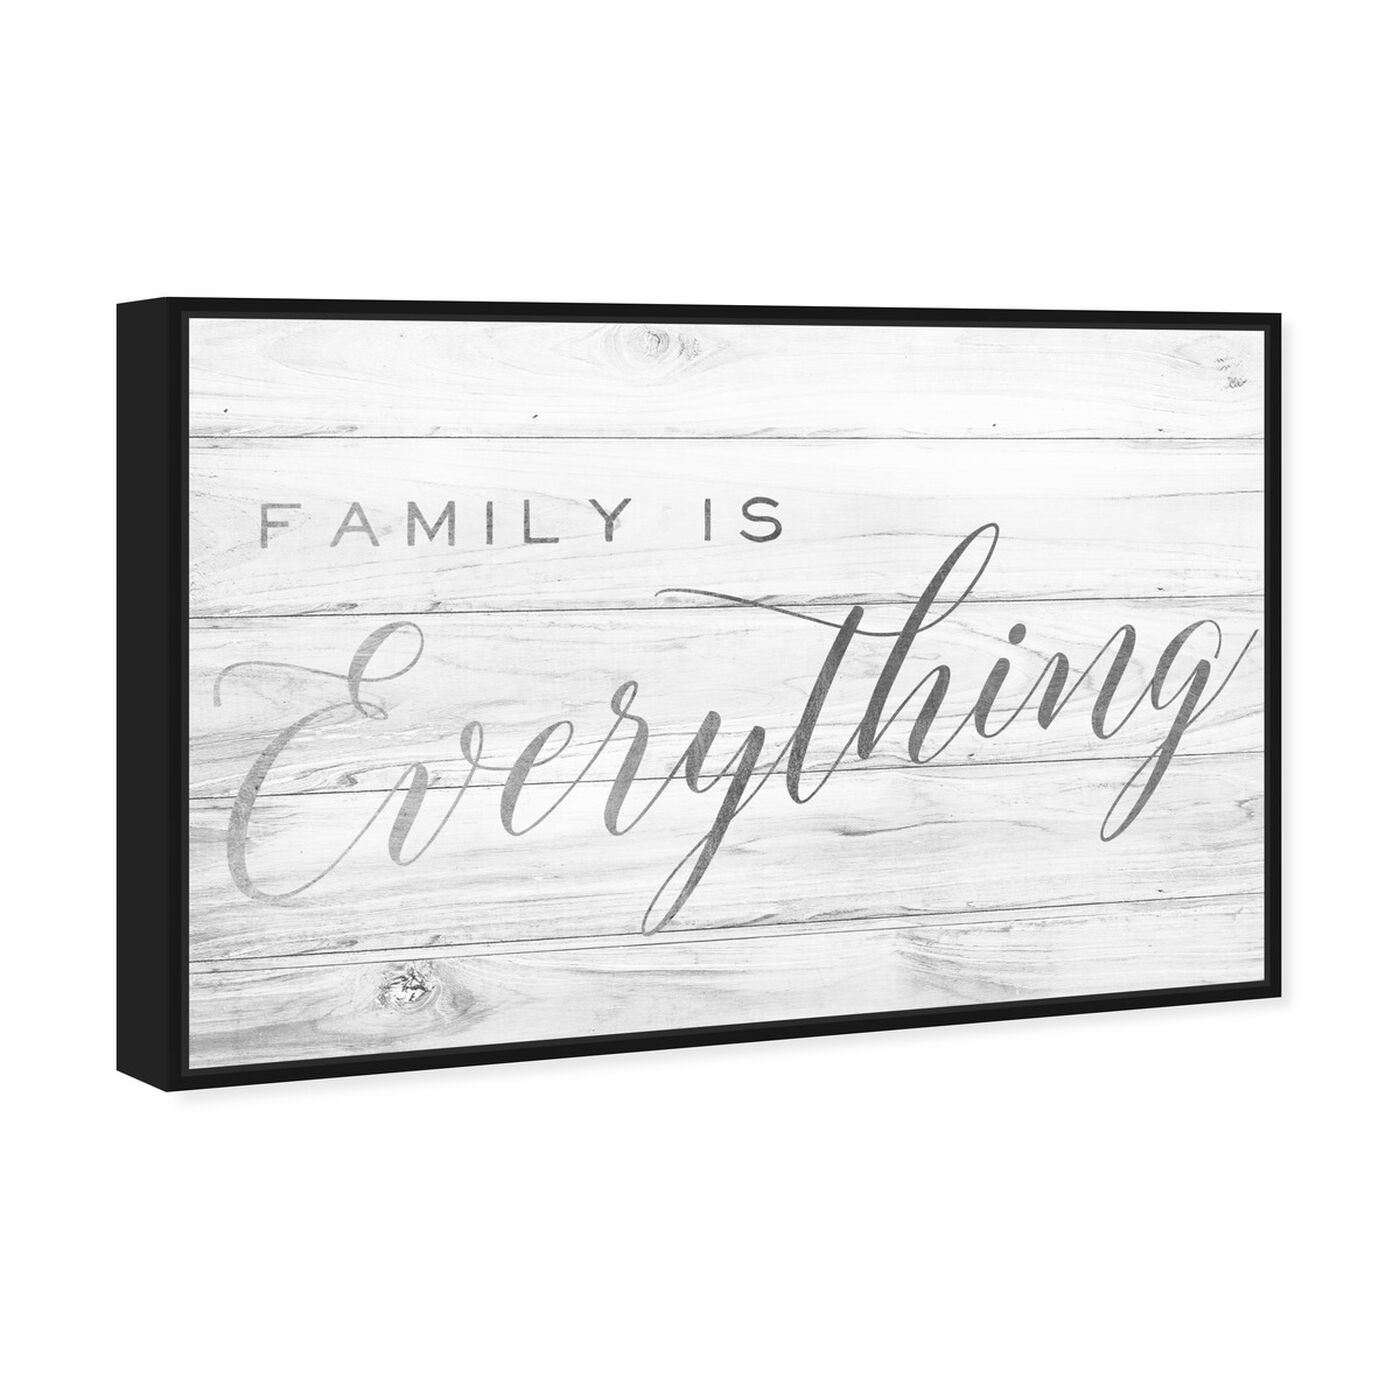 Angled view of Family is Everything Silver featuring typography and quotes and family quotes and sayings art.